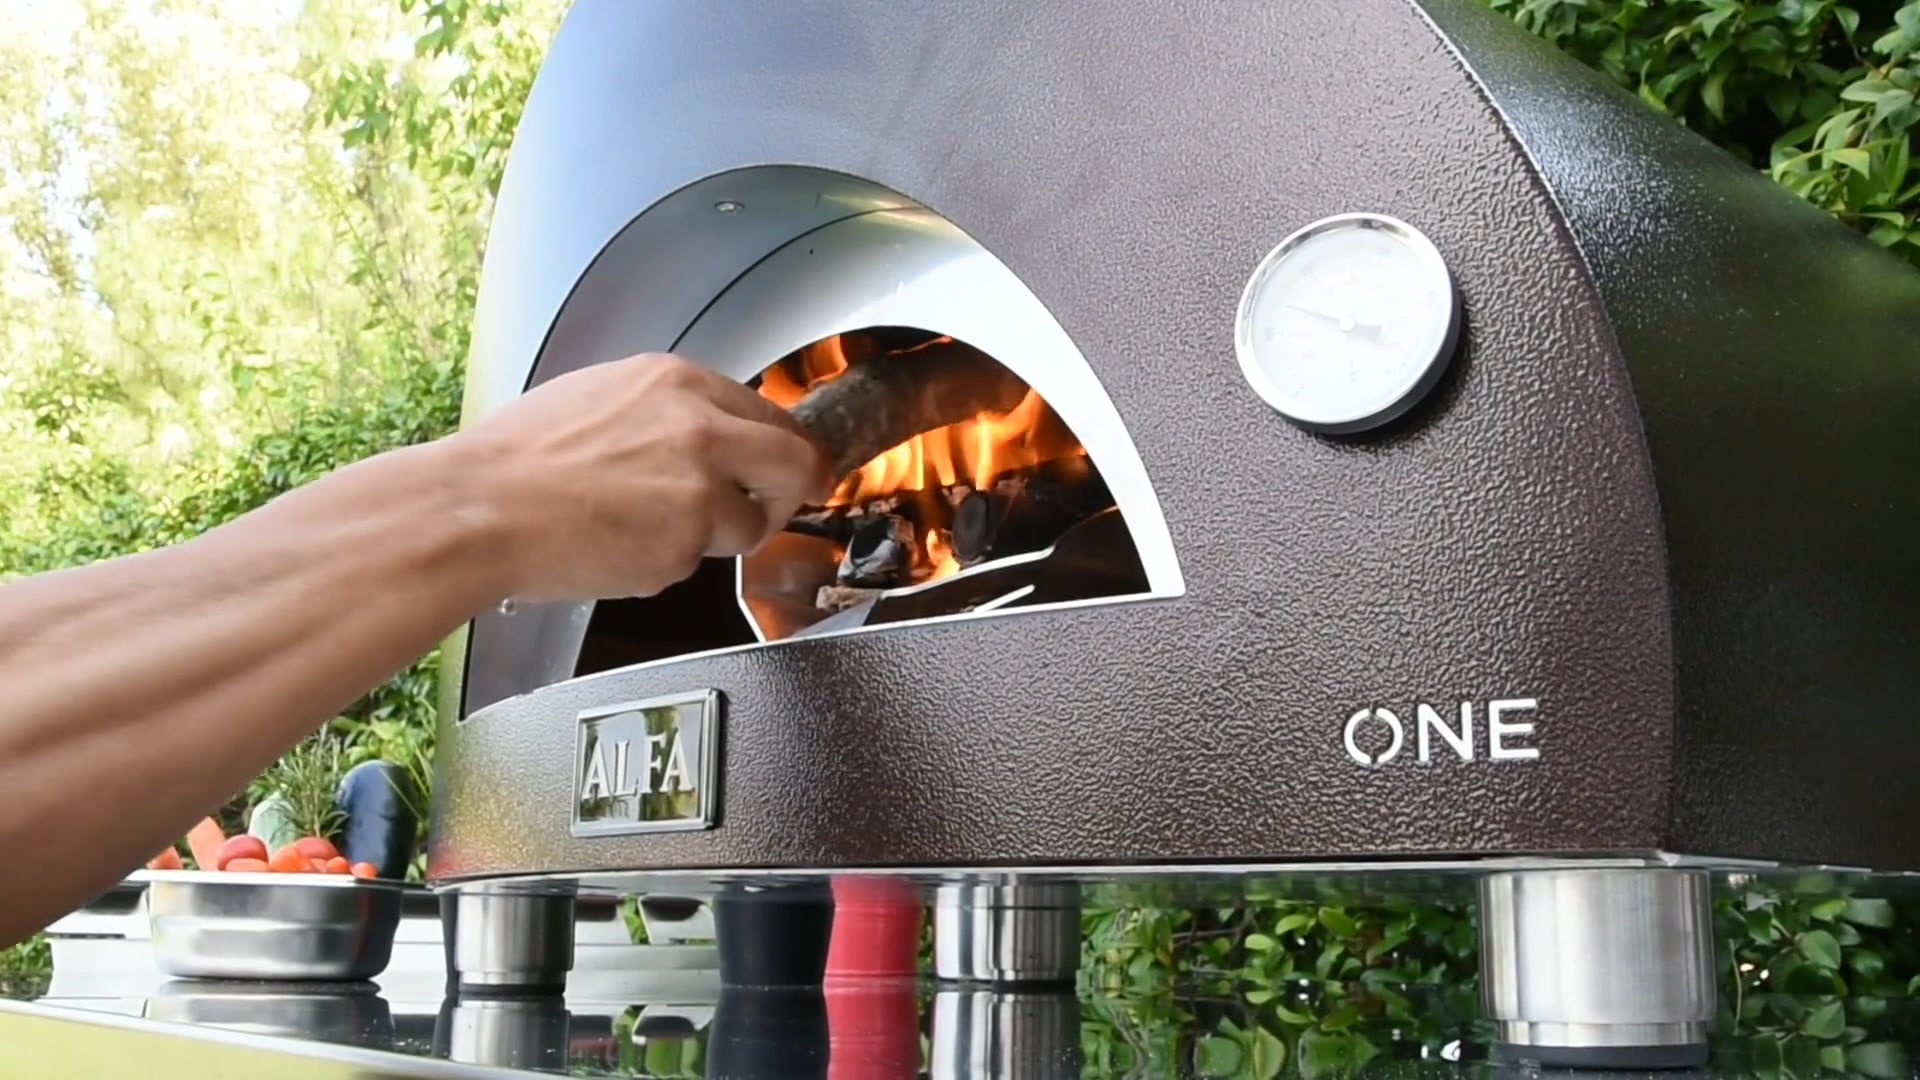 ONE - The Italian oven for everyONE!